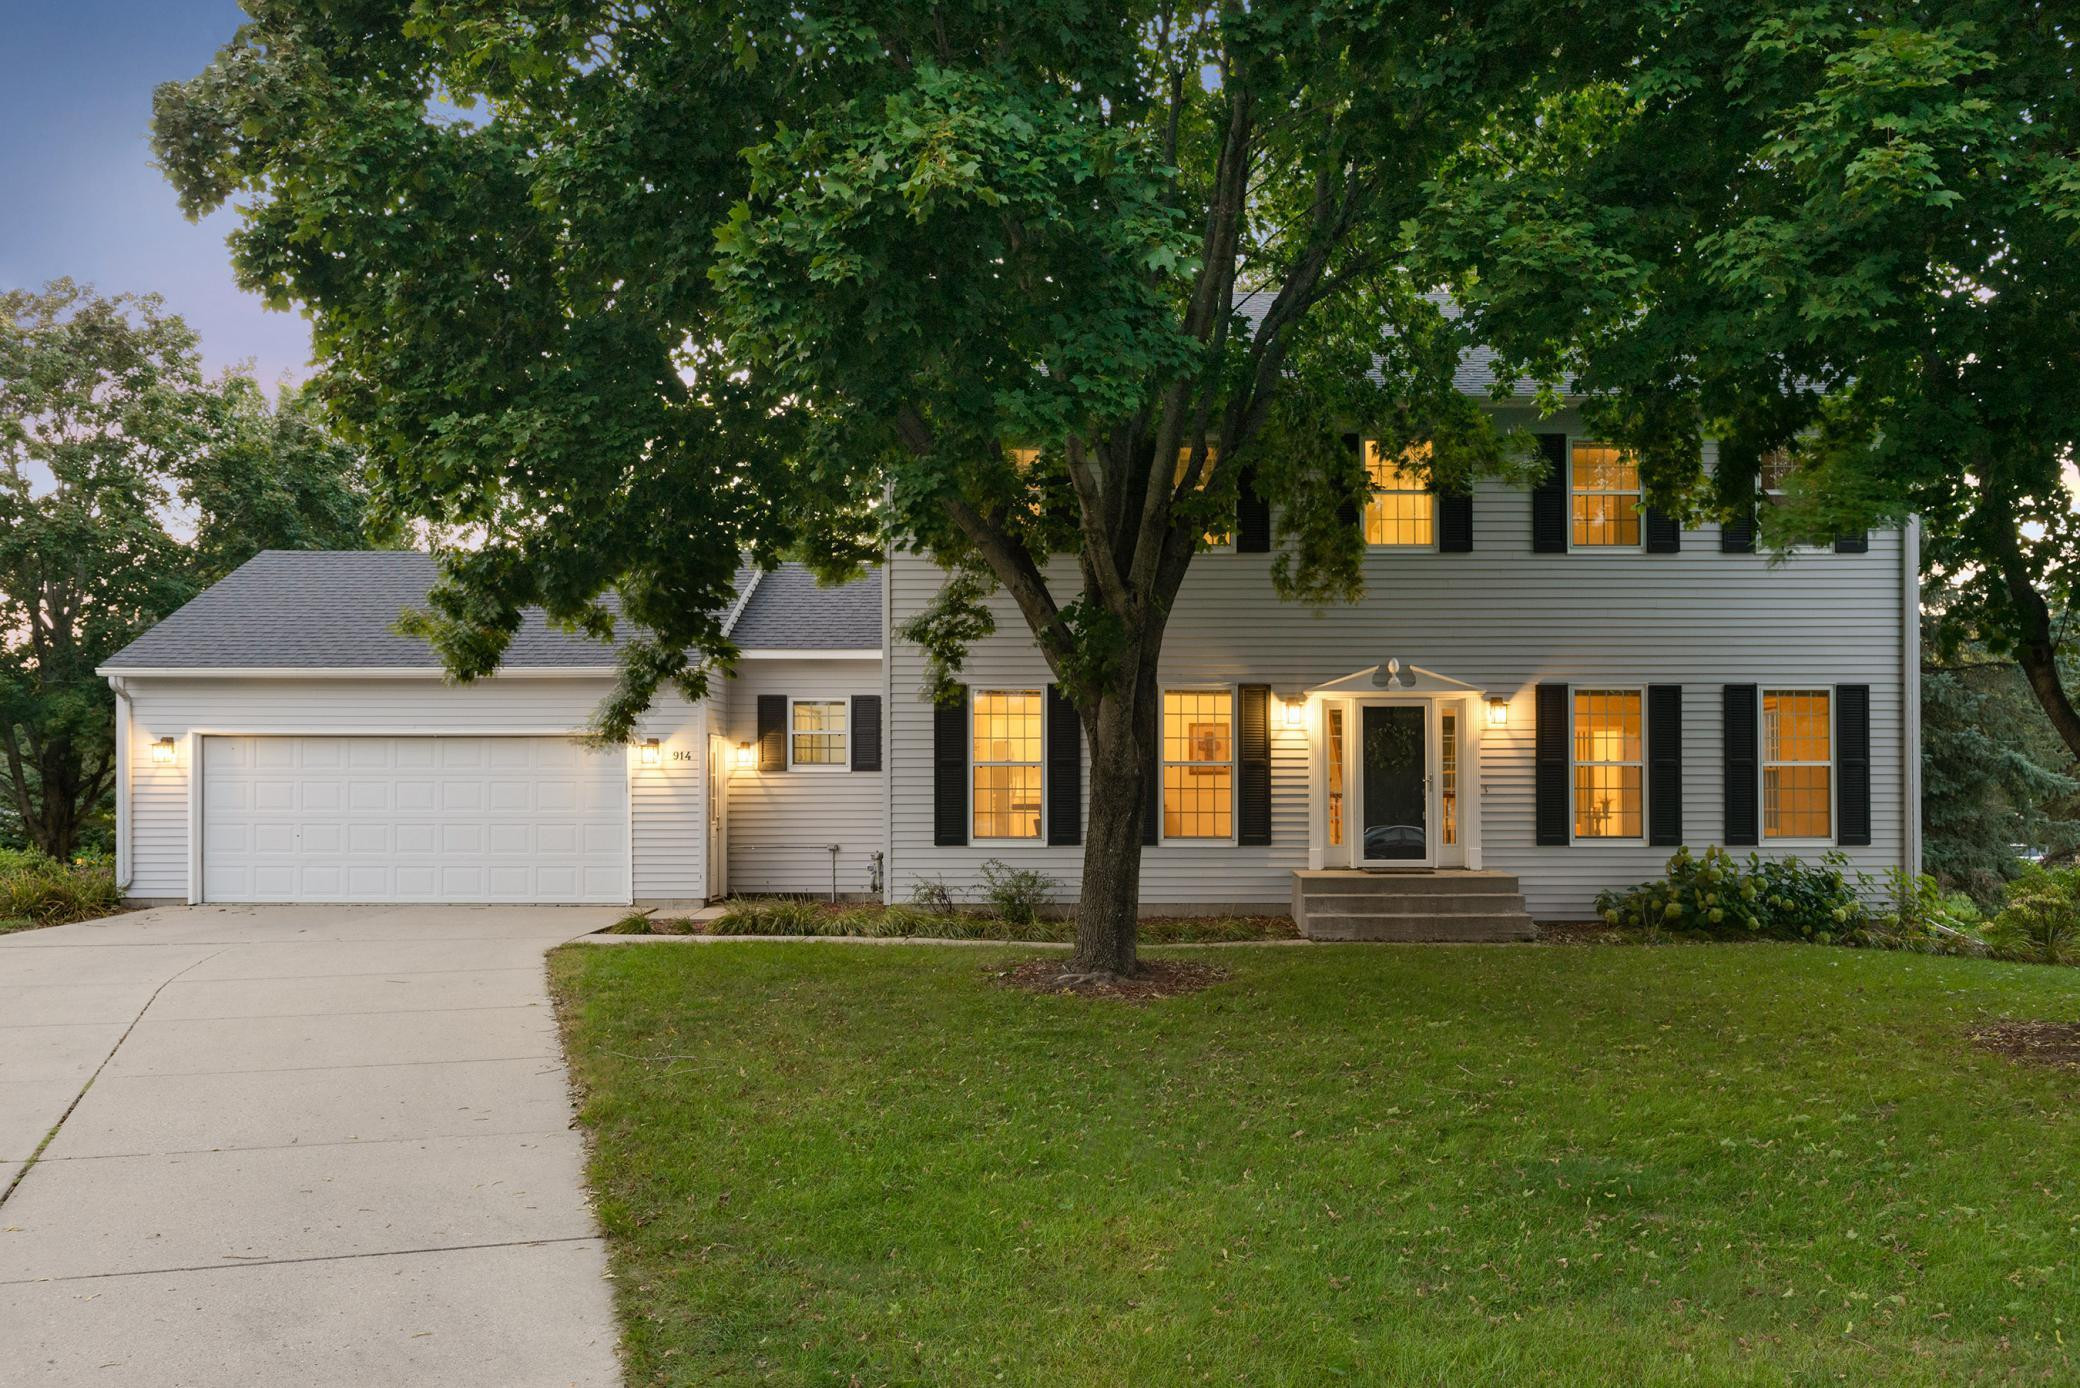 Welcome home to 914 Saint Andrews Pl! This stunning 4 bedroom 4 bath classic colonial is completely turn-key having recently gone through some renovations and updates. Set right next to the golf course, parks and trails!